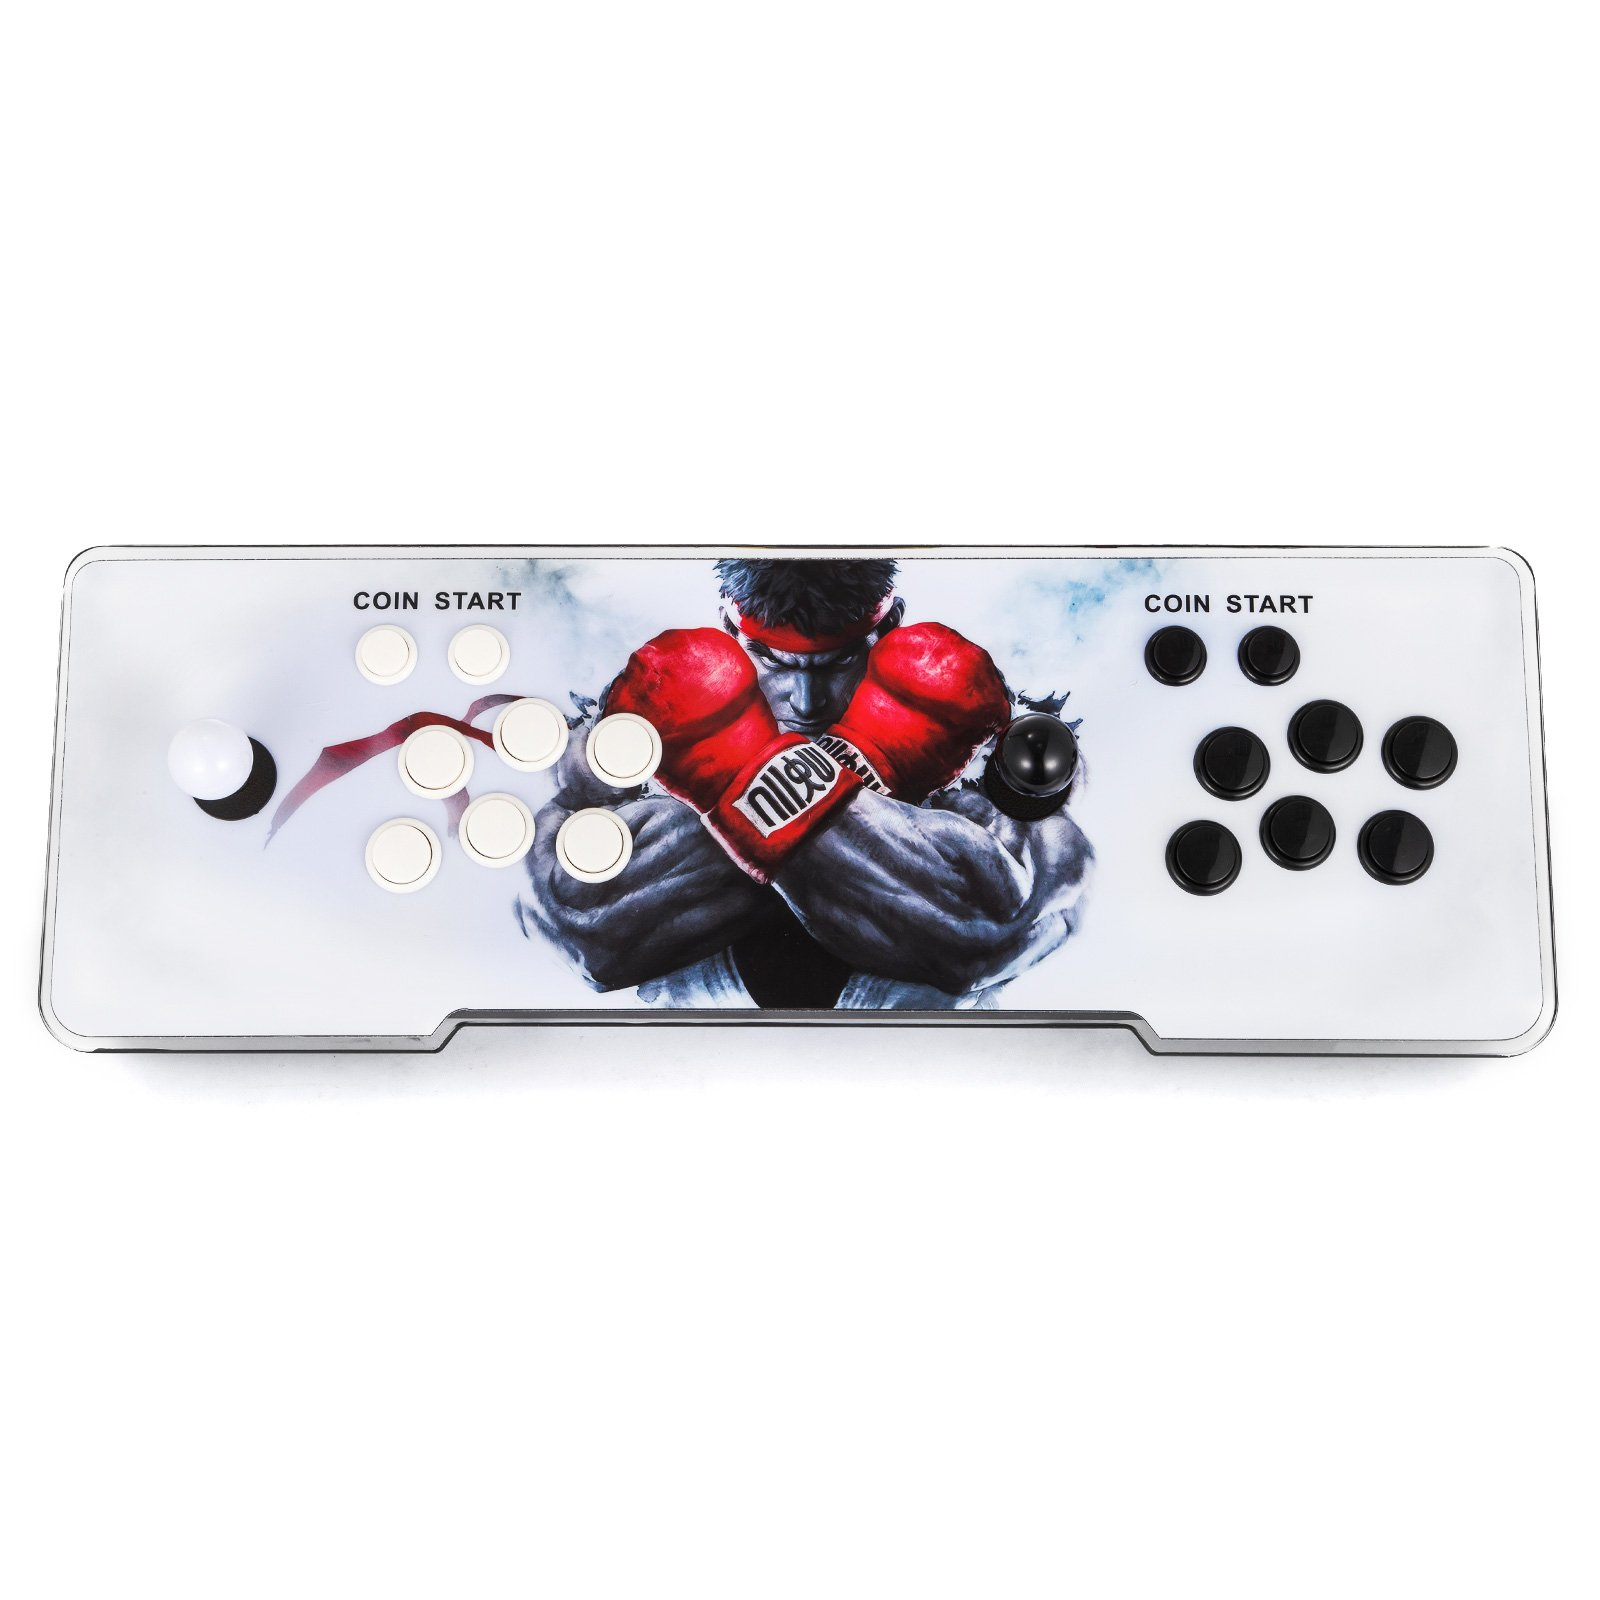 Happybuy Video Game Console, Arcade Machine 1500 Classic Games, 2 Players Pandora's box 5S multiplayer home Arcade Console 1500 Games All in 1 NON-JAMMA PCB Double Stick Newest Design Buttons Power HD by Happybuy (Image #5)